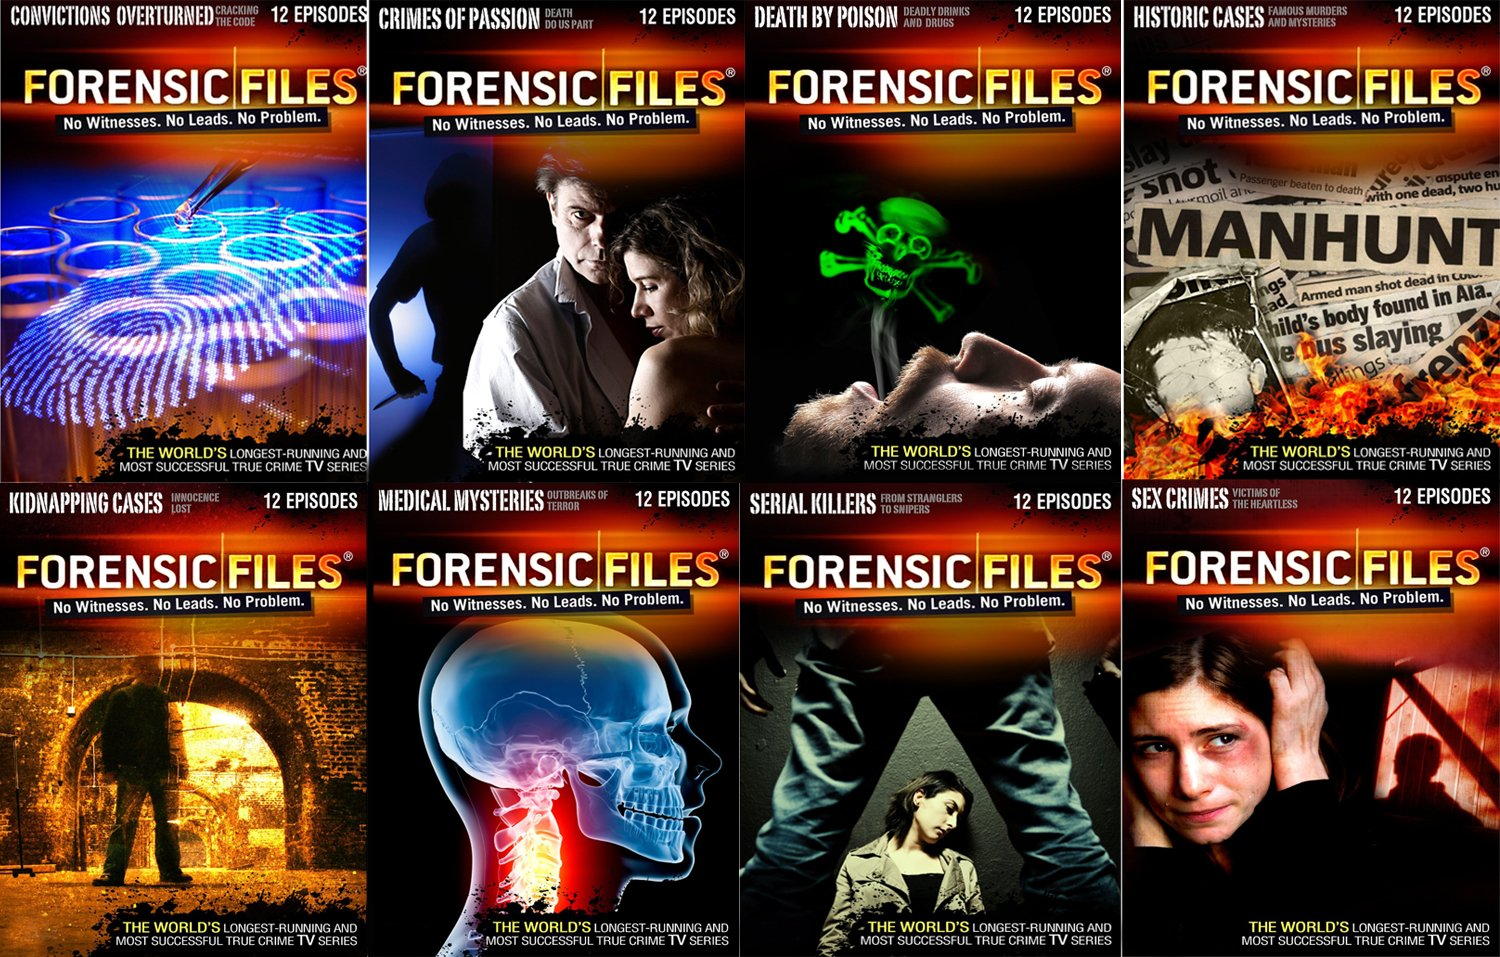 Amazon Com Forensic Files Best Of Series 96 Episodes 16 Dvd Collection Amazon Com Exclusive Peter Thomas Paul Dowling Paul Dowling Movies Tv